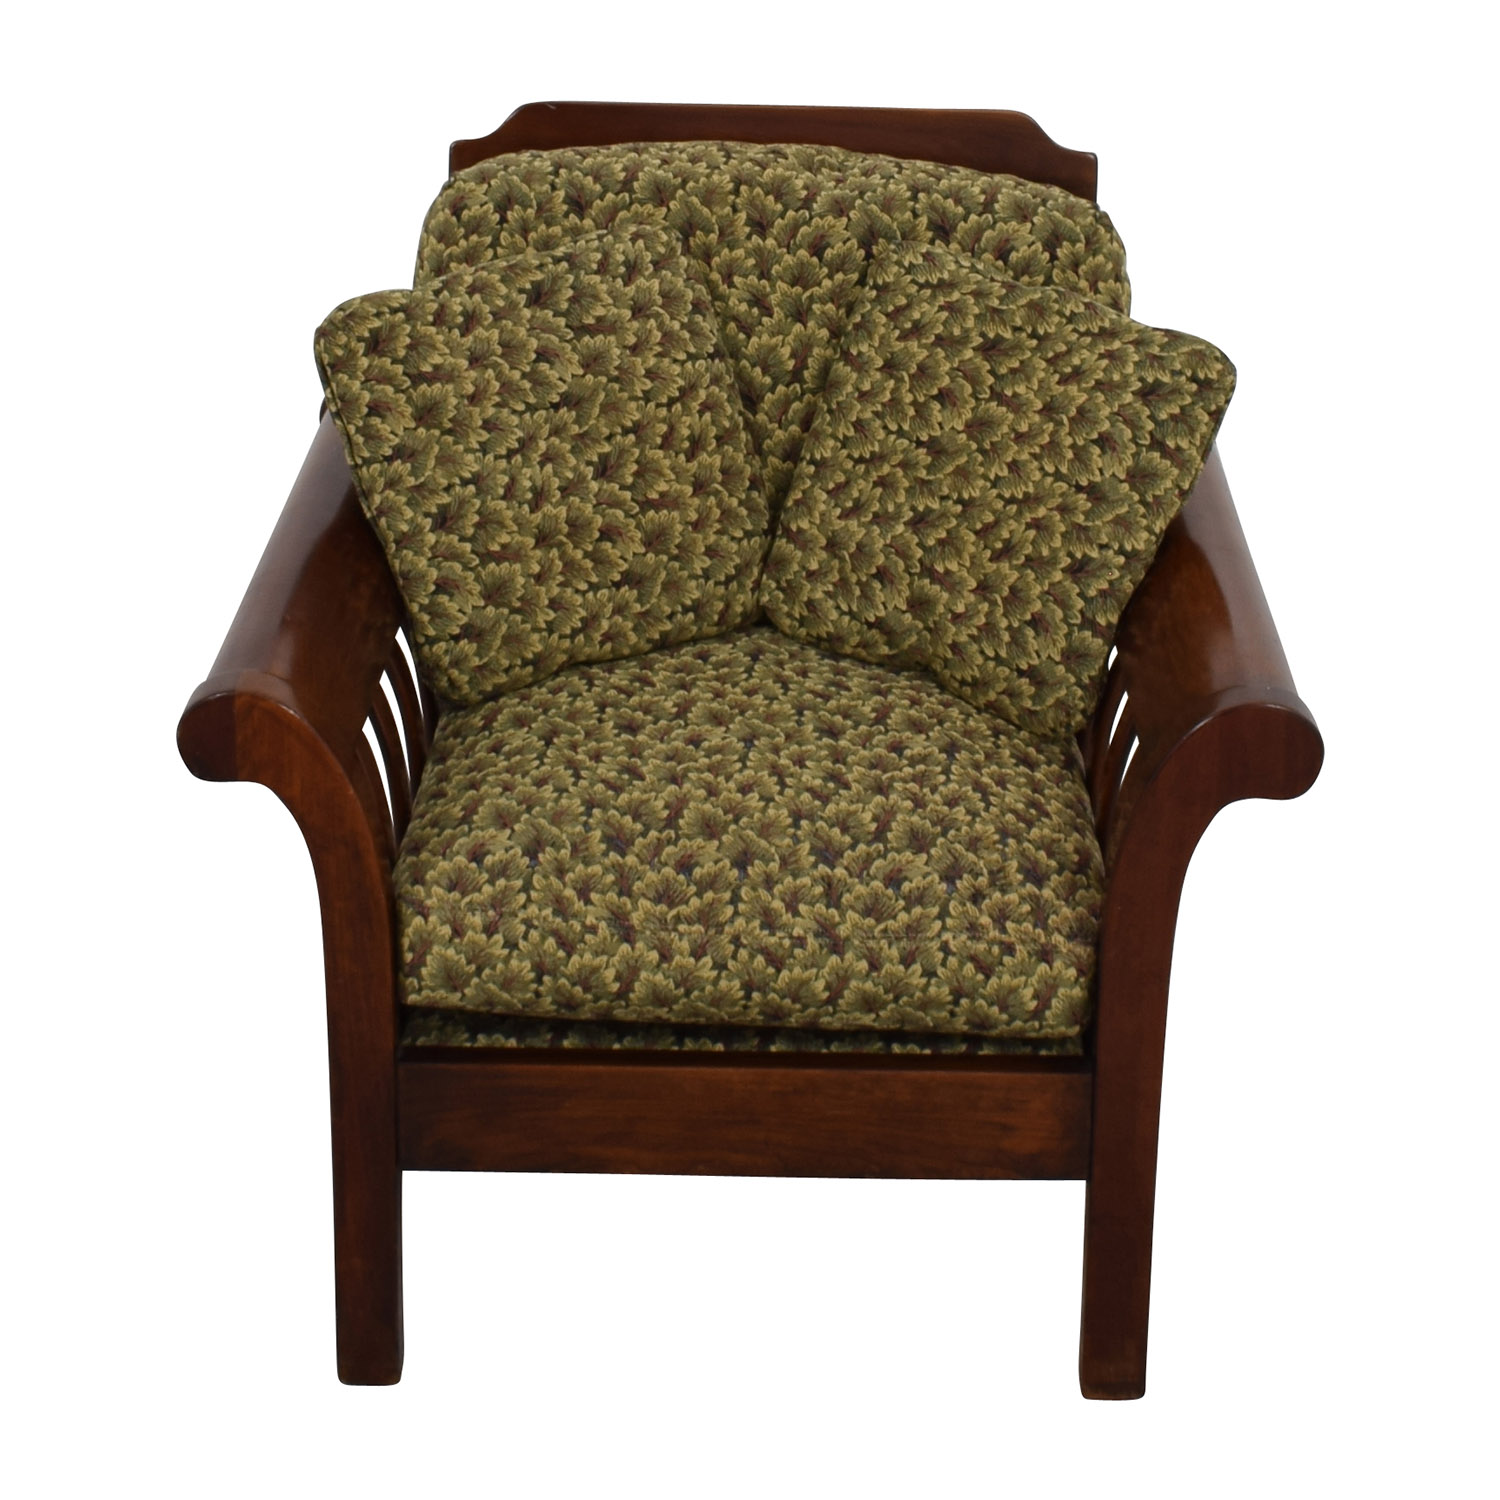 buy Hickory Chair Company Hickory Chair Company Wood Chair online